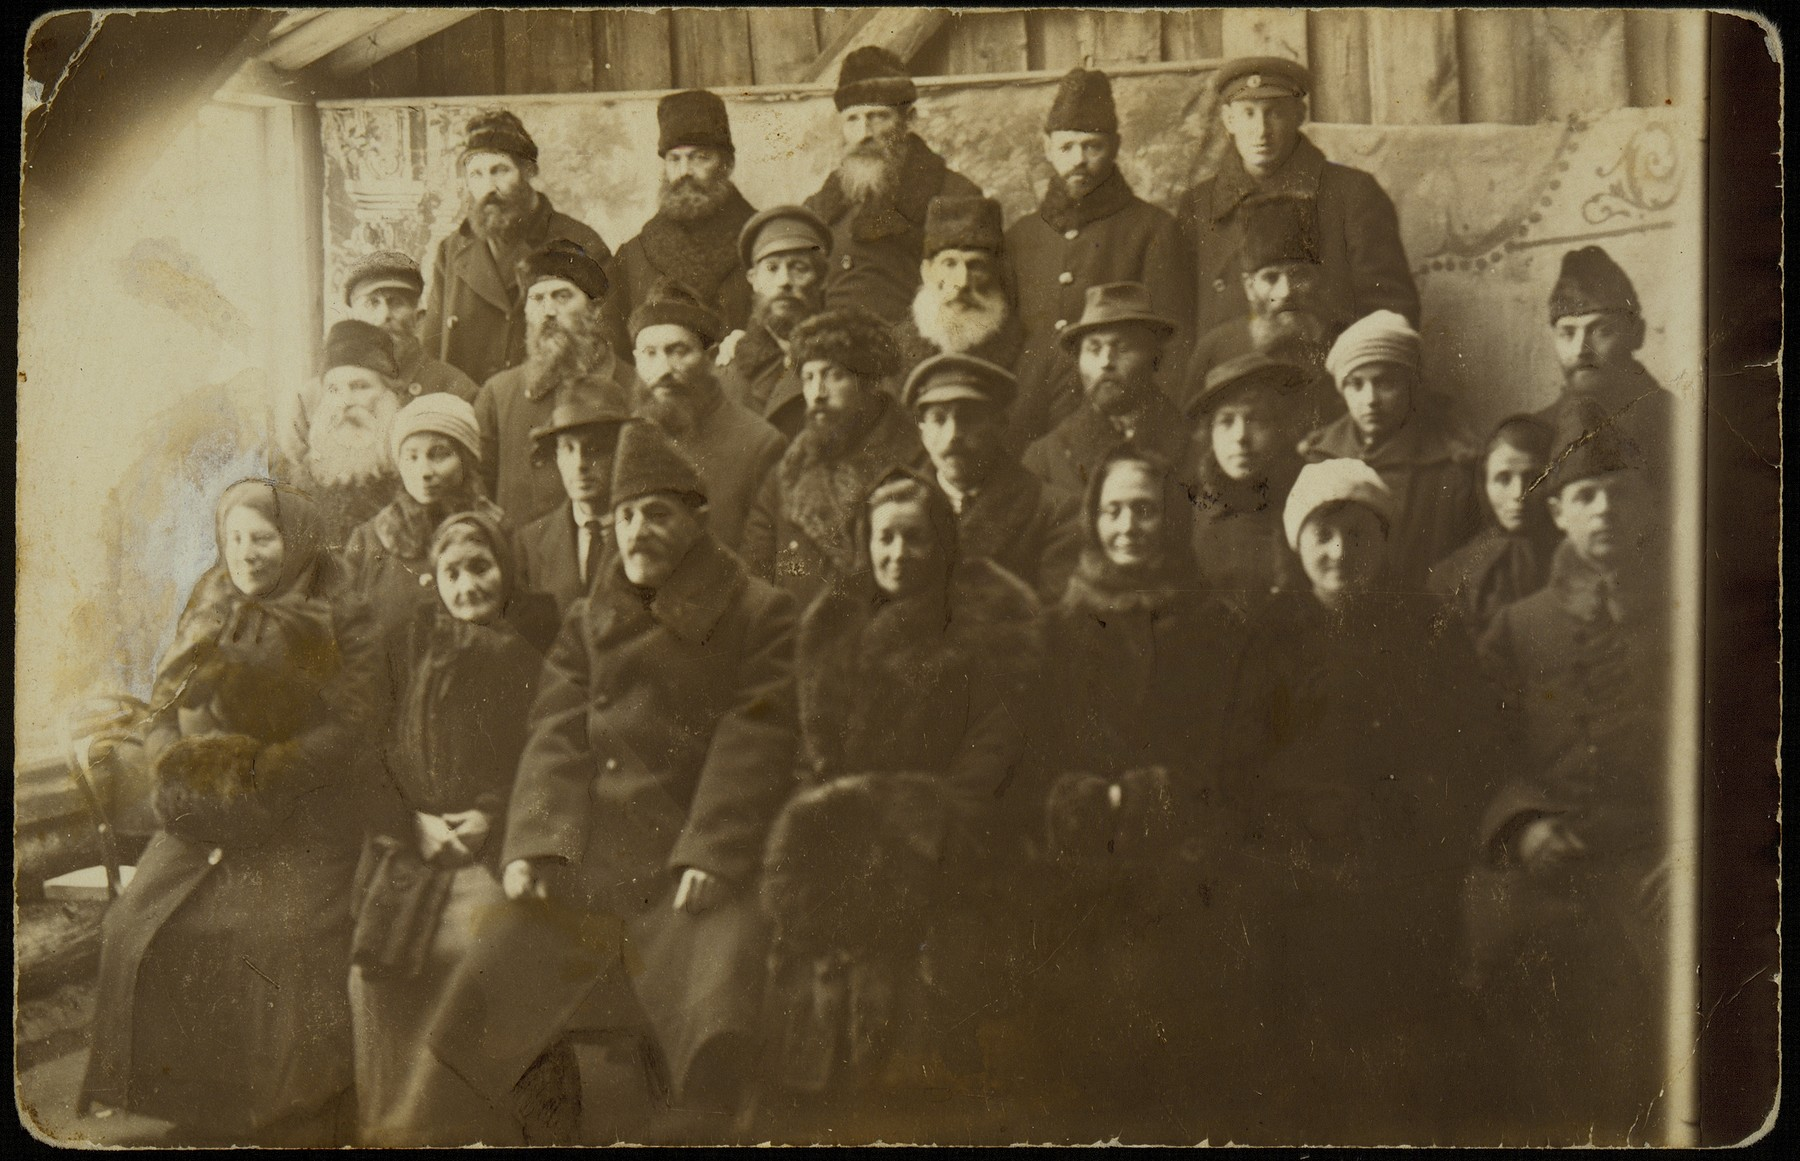 The Assistance Committee responsible for distributing  donations of money from America.   The photo was taken in honor of Aaron-Don Becker (front row, third from left), who in 1920 brought a large donation to the shtetl from the Eishyshker Society in New York.  Seated to the right of Aaron-Don is his relative Sarah Kaganowicz, to his left is Hayya Sonenson, head of the Froyen Farain (Union of Women); Libe-Gittel Rudzin; her daughter, Miriam Kaganowicz; and husband Shael, relatives of Aaron-Dan.  Among others in the photo are members of the Pachianko family, members of the Kahal, and clergy.  Standing in the back, between Aaron-Don and Hayya Sonenson, is Reb Hertz Mendl Hutner, the shtetl judge.